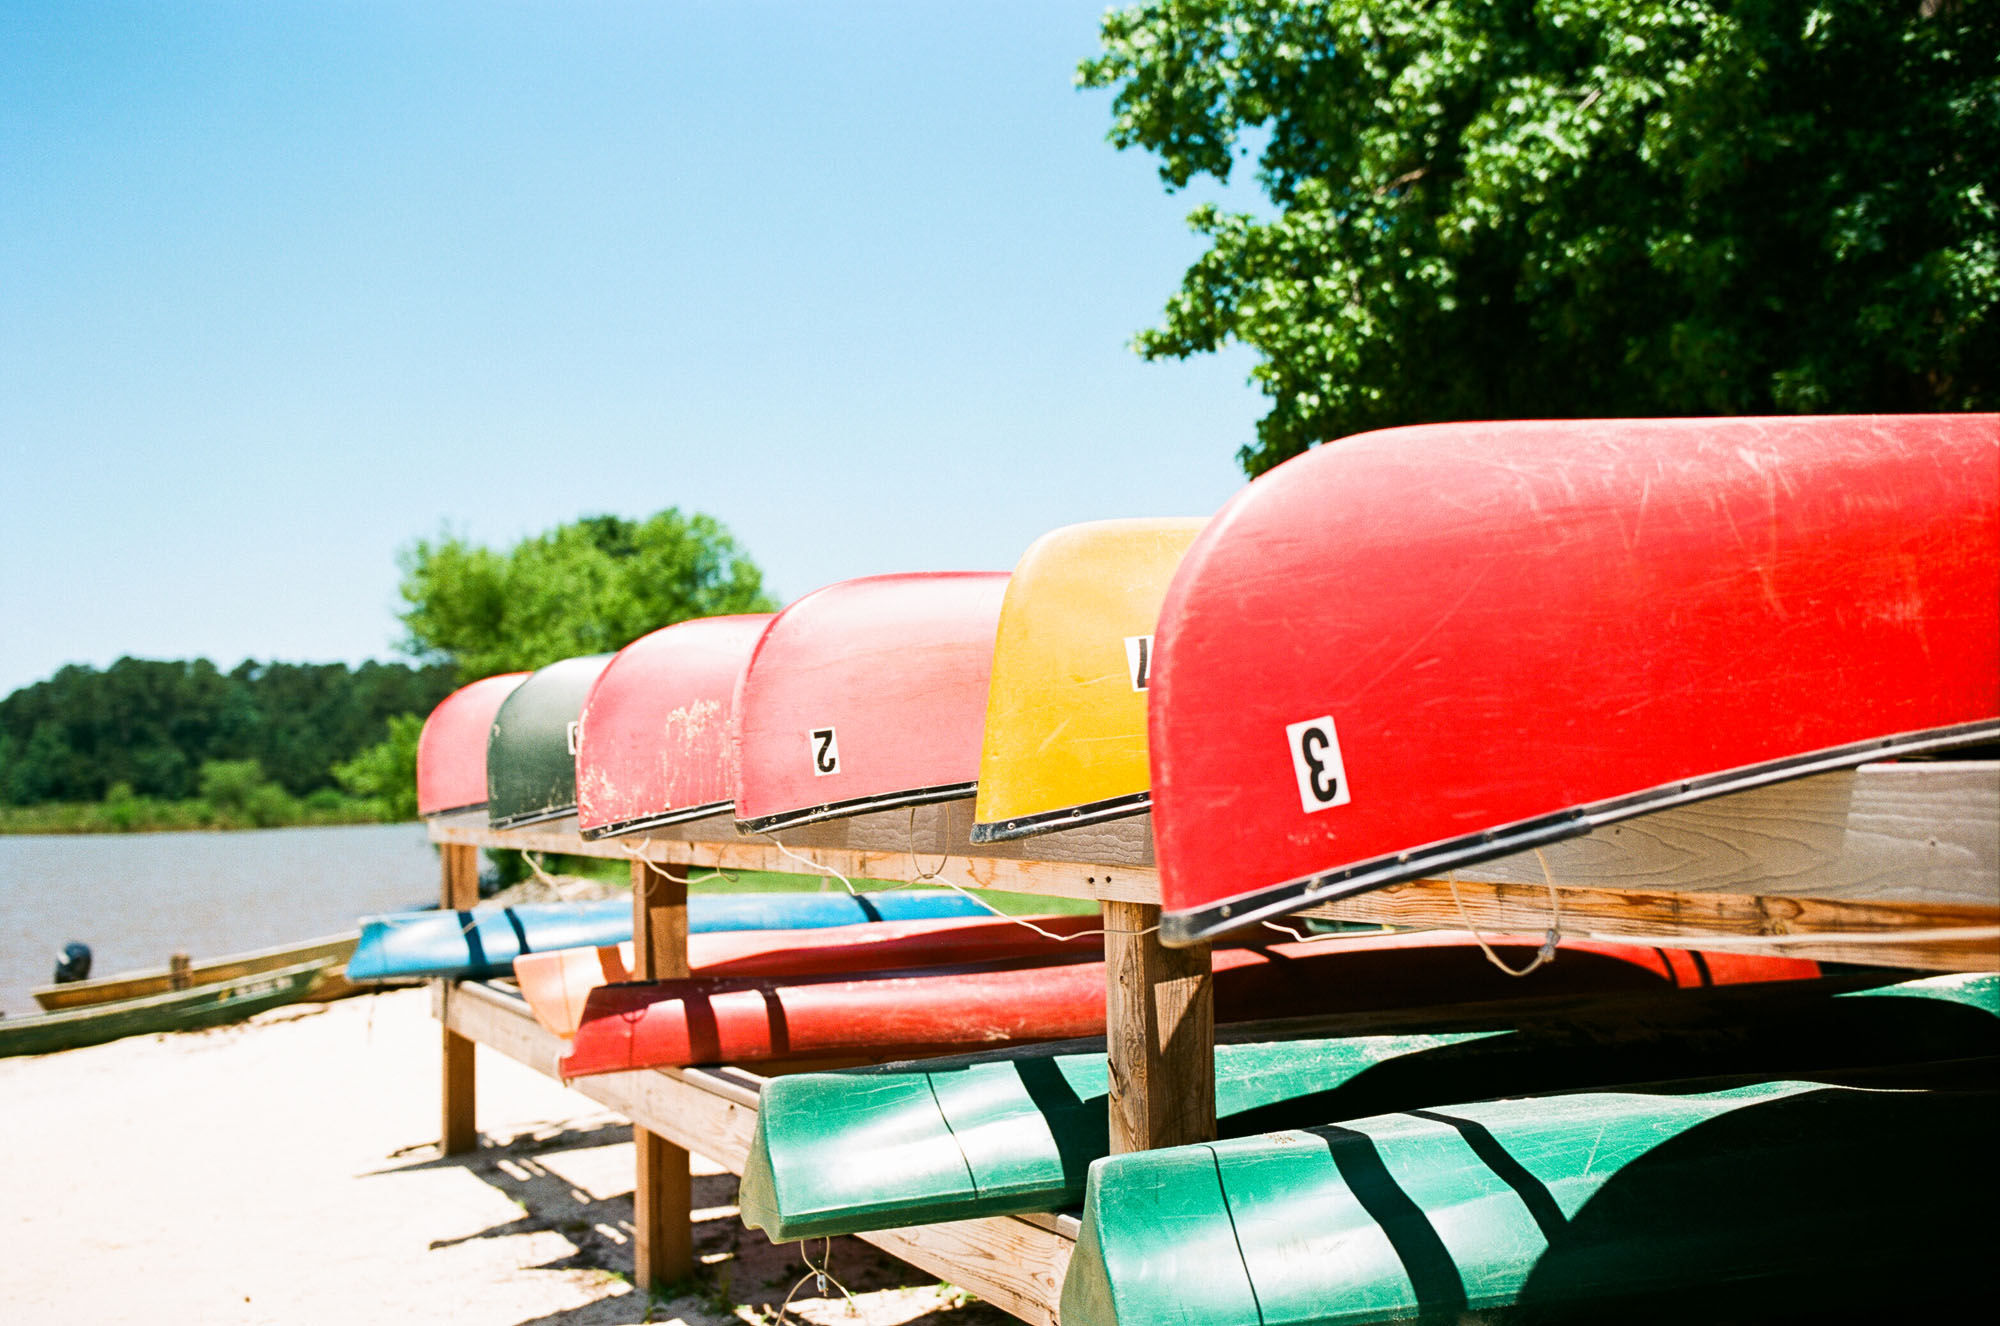 analog-photography-film-stocks-for-summer-kodak-ektar100-1